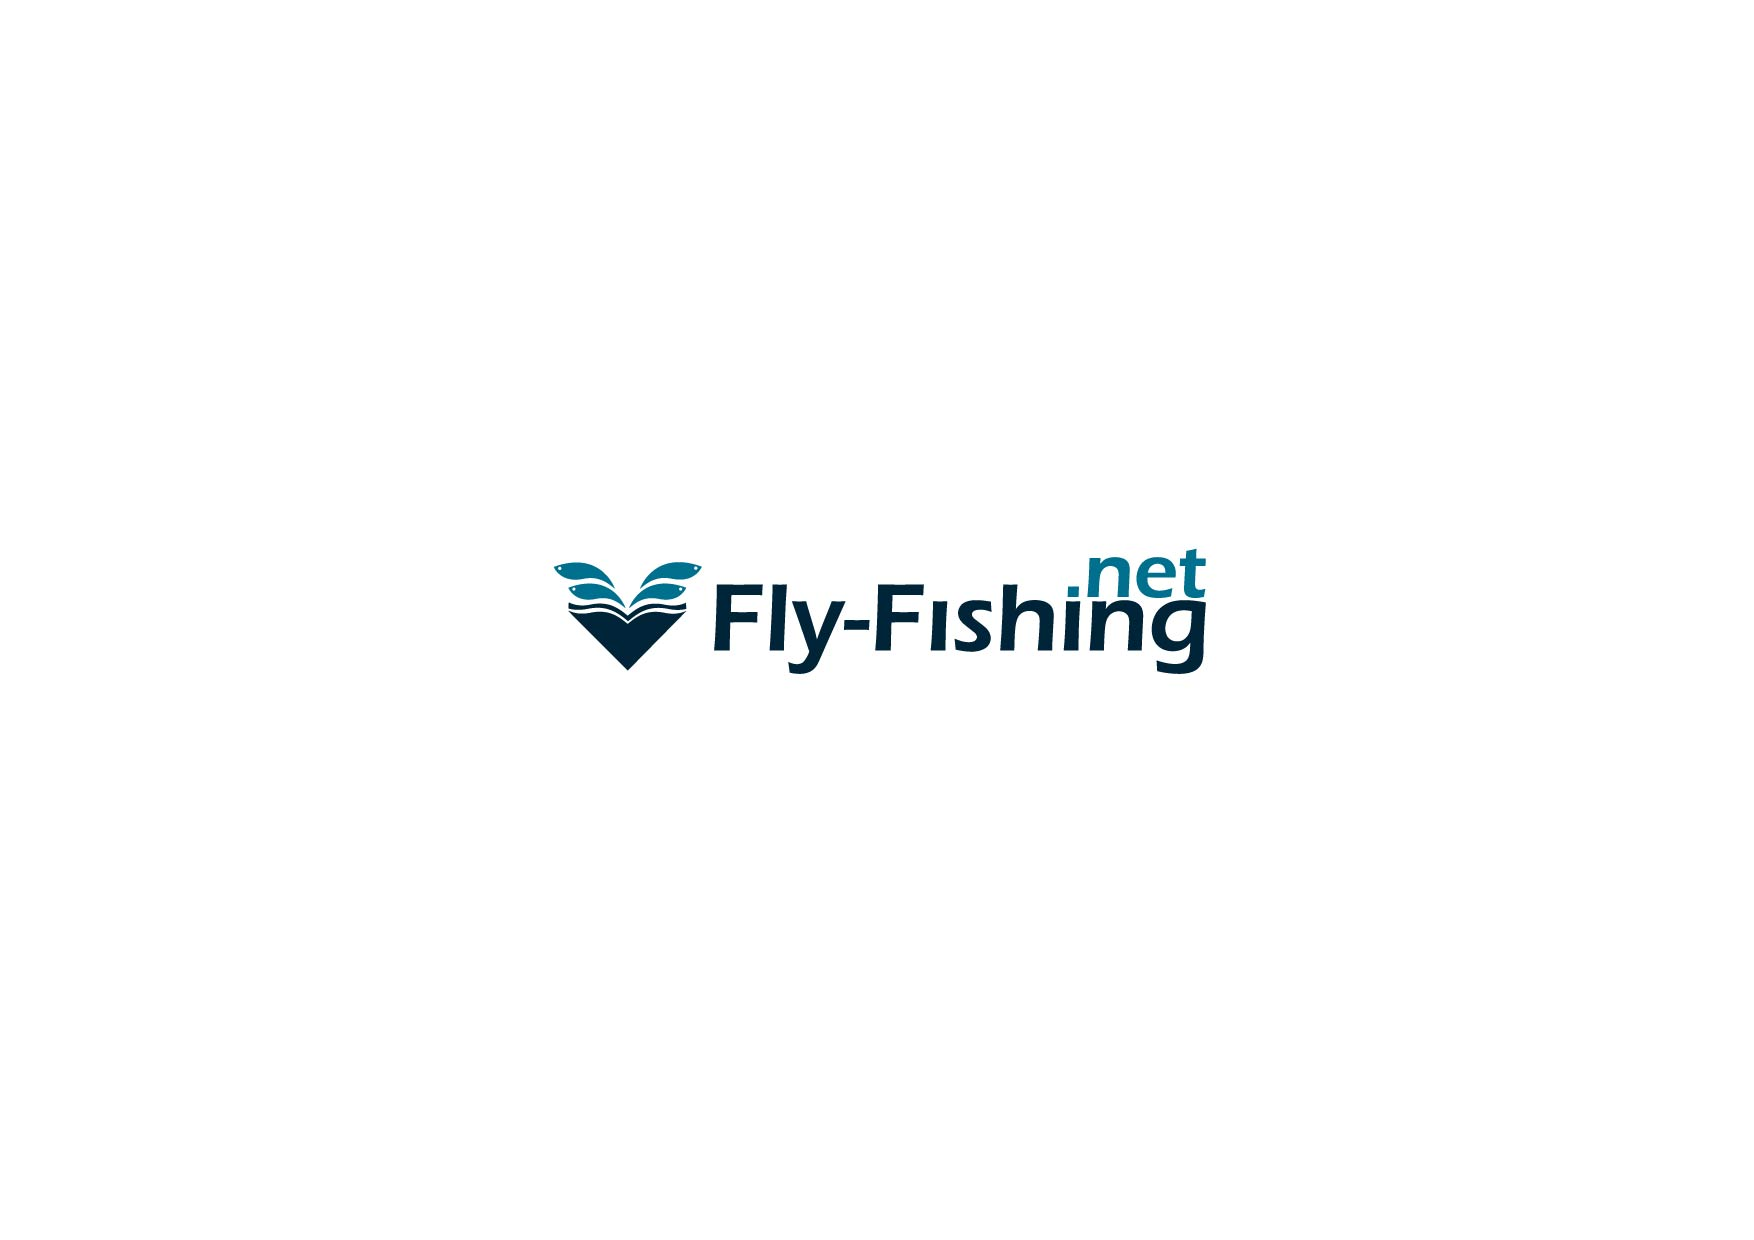 Logo Design by Osi Indra - Entry No. 94 in the Logo Design Contest Artistic Logo Design for fly-fishing.net.